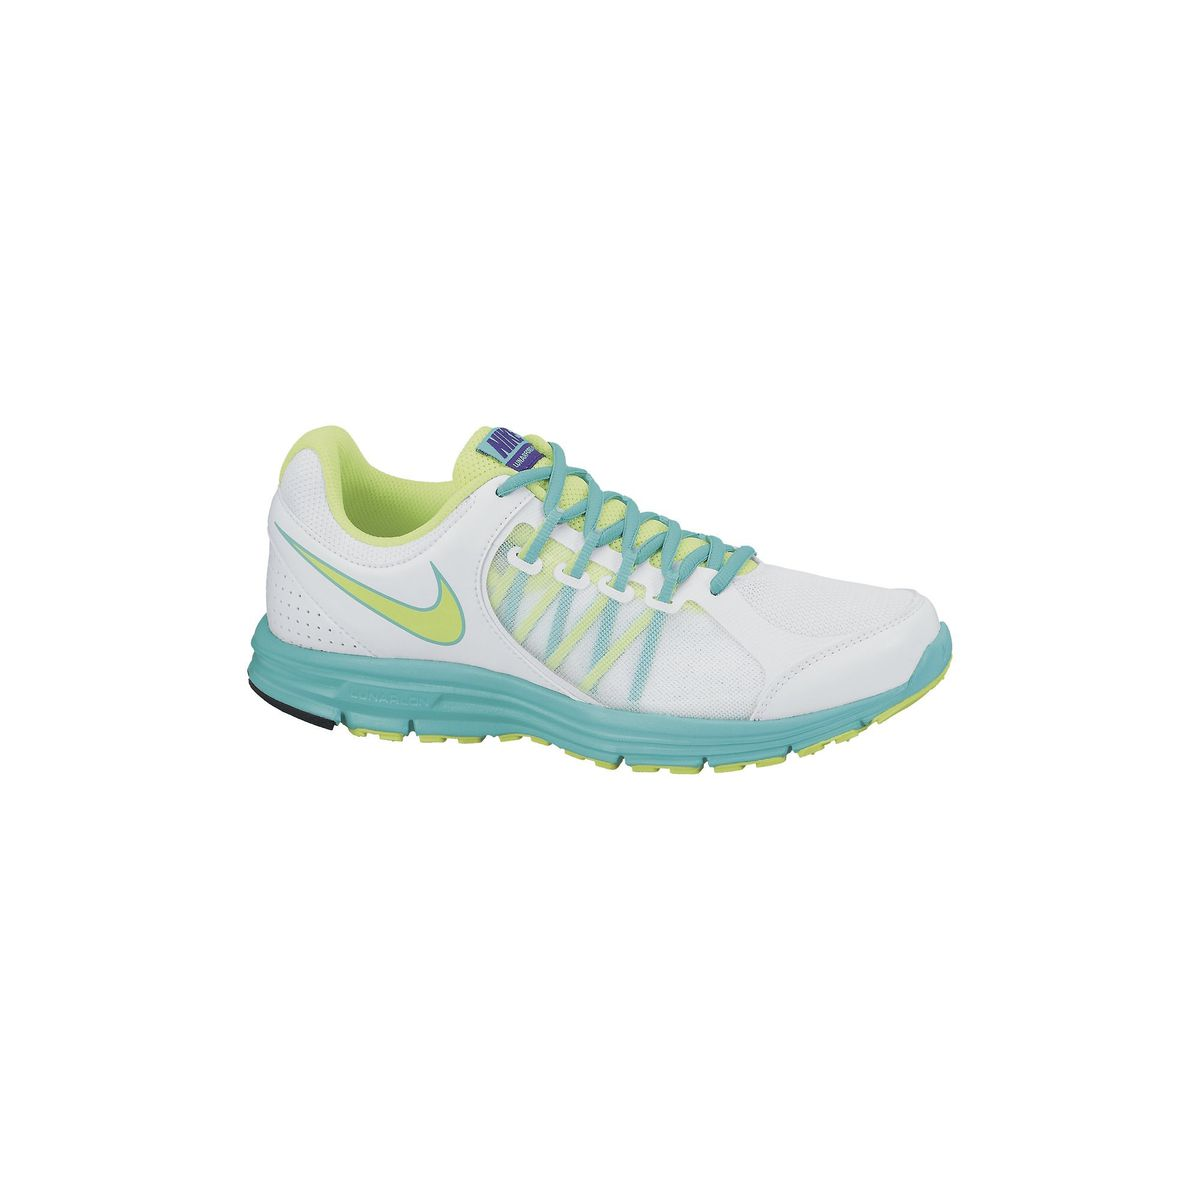 Where To Buy Nike Running Shoes In South Africa 25